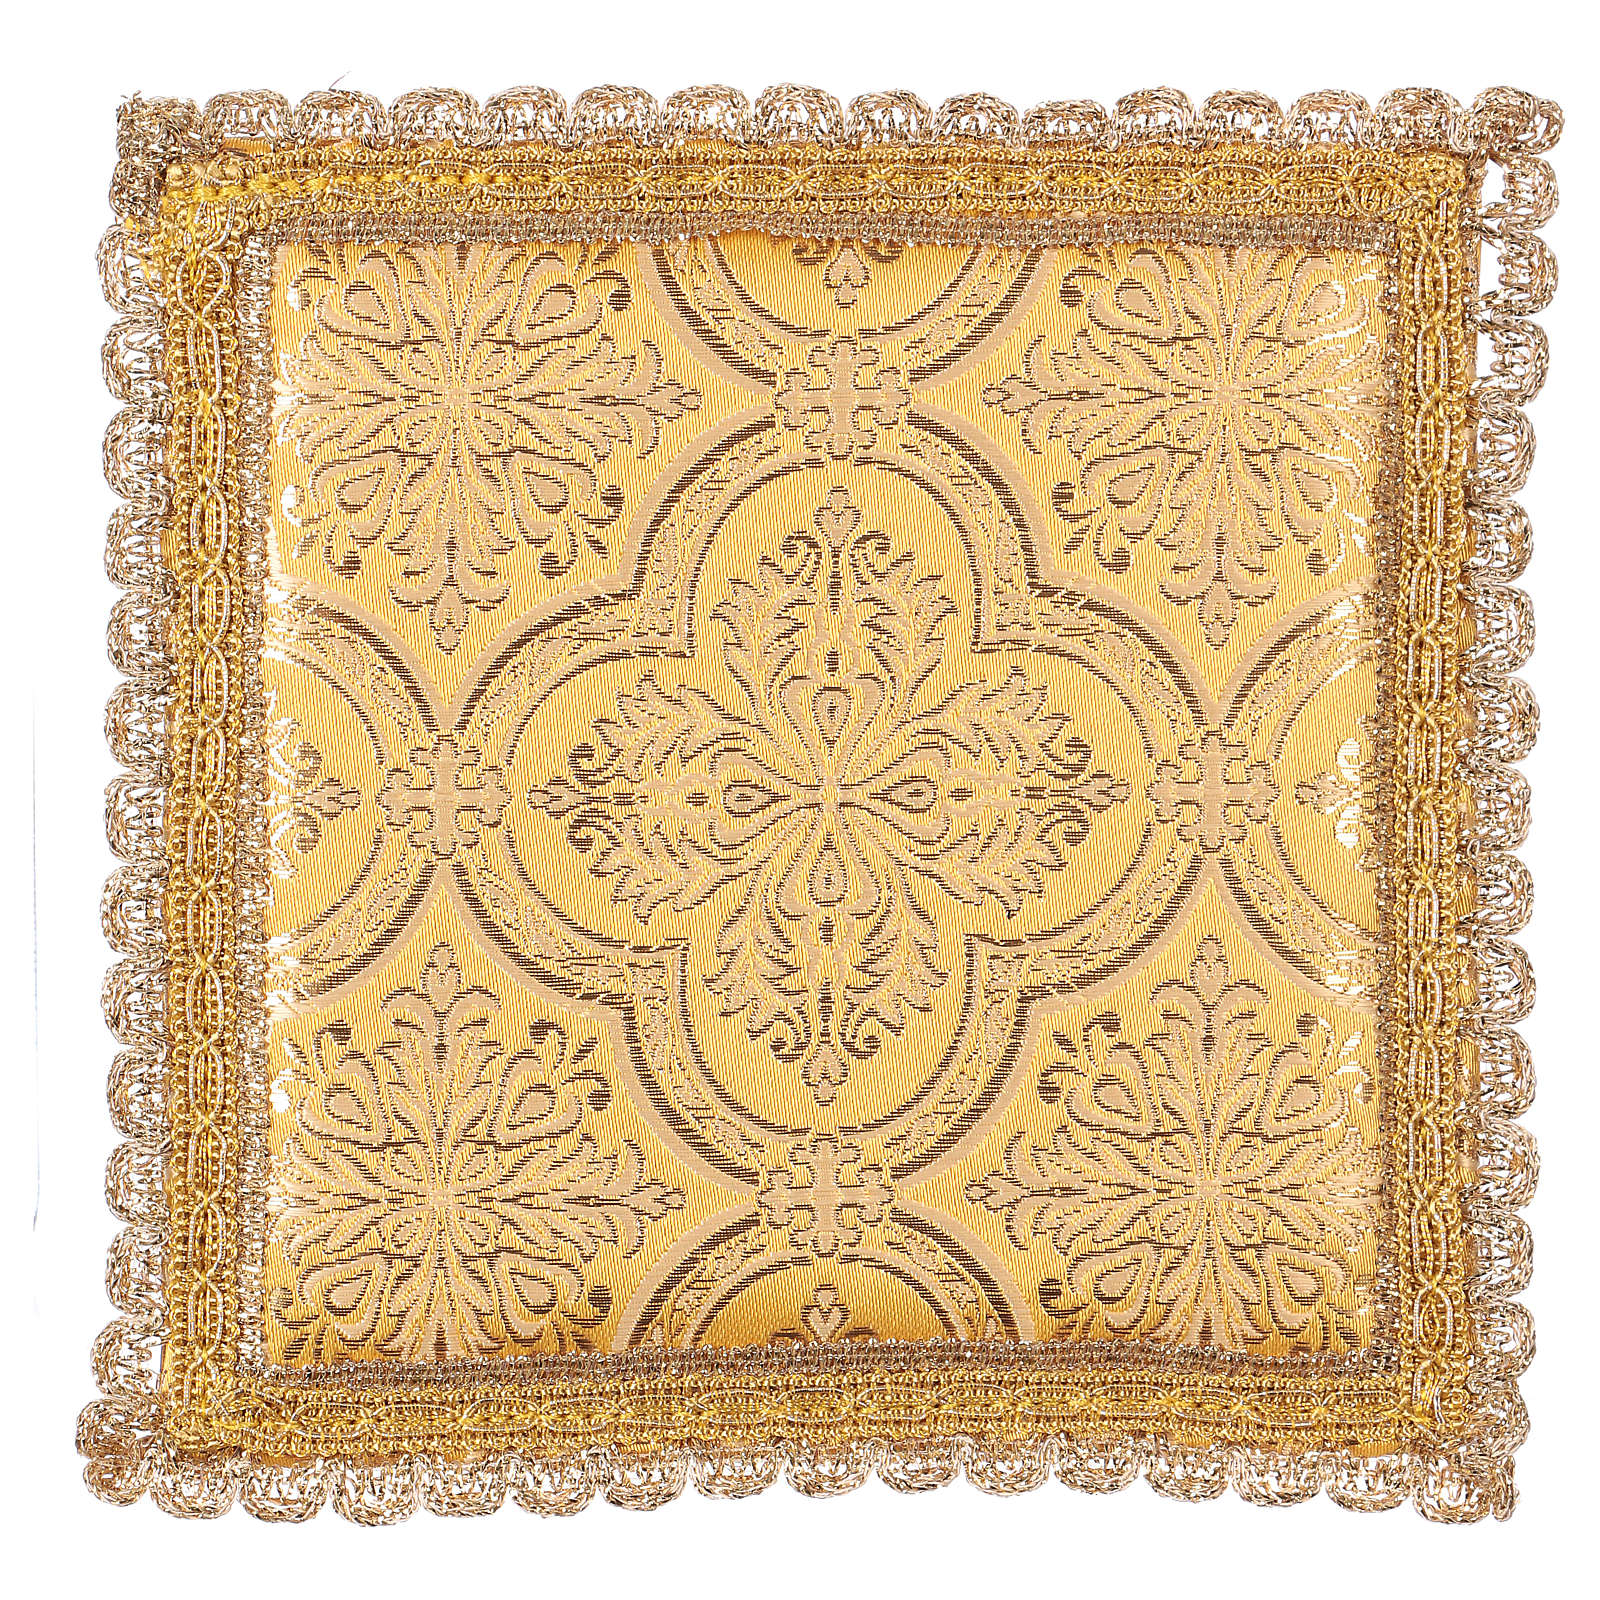 Chalice veil (pall) with cross embroidery on yellow brocade 4